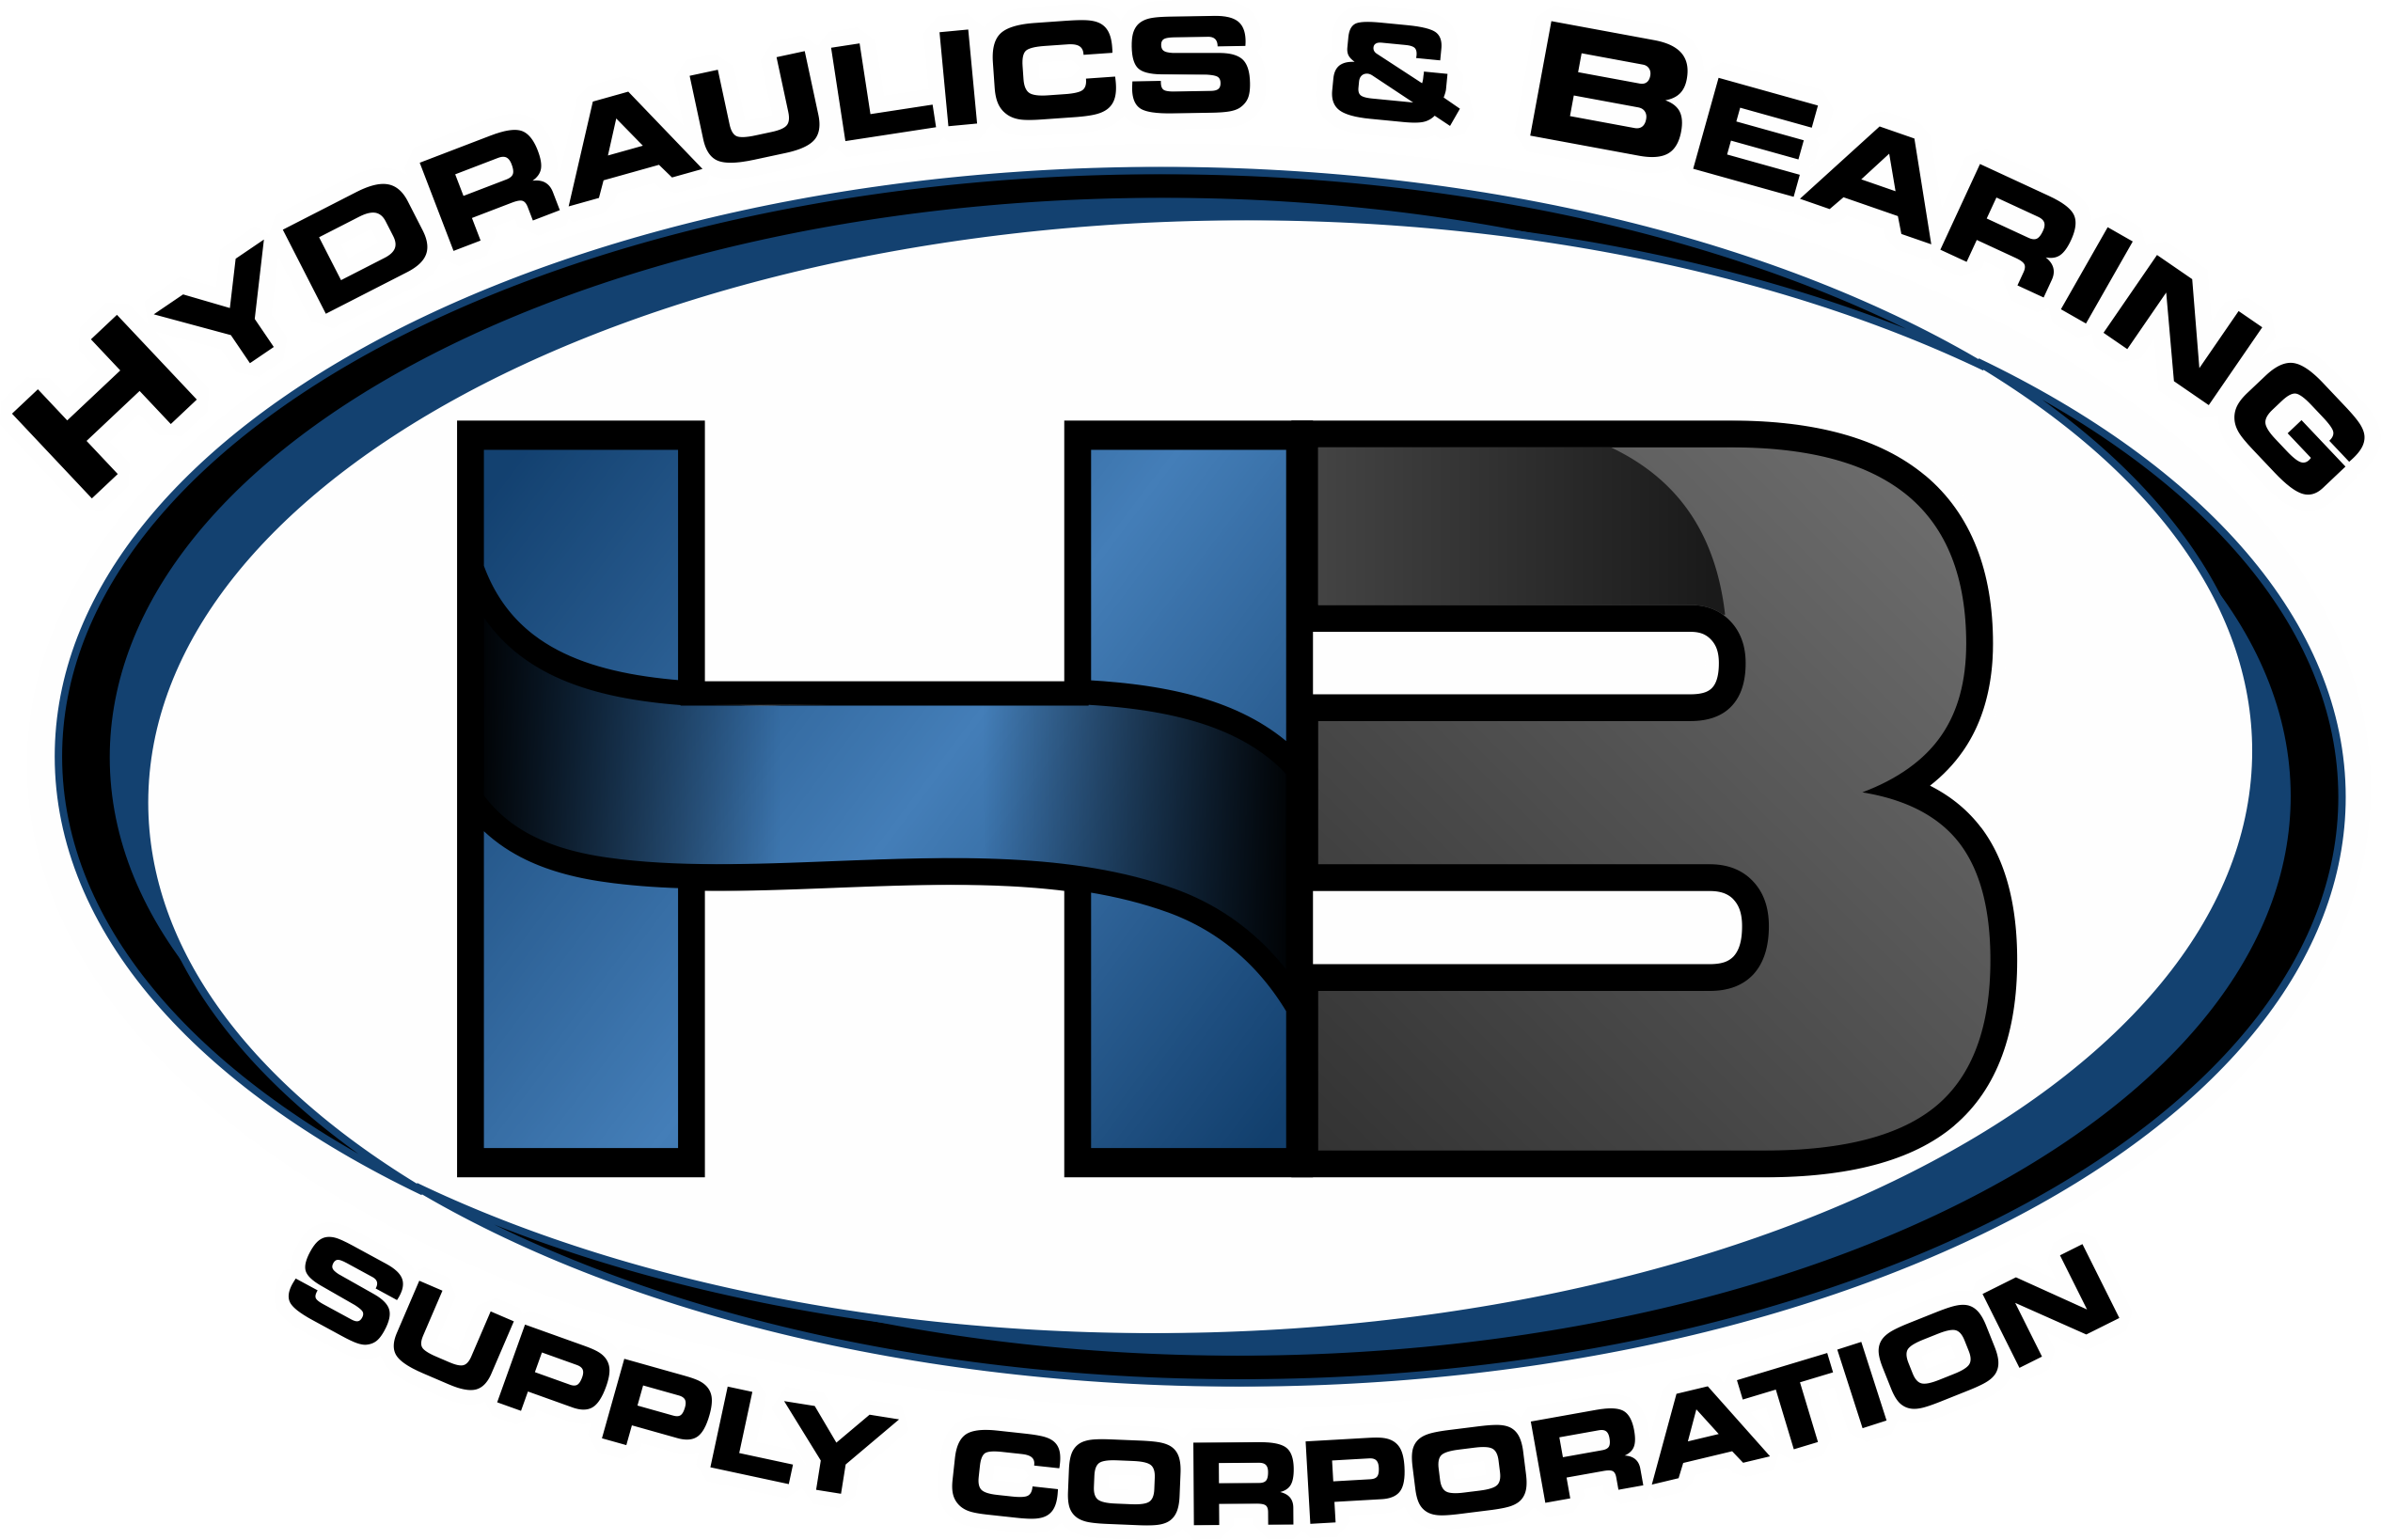 Hydraulics & Bearing Supply